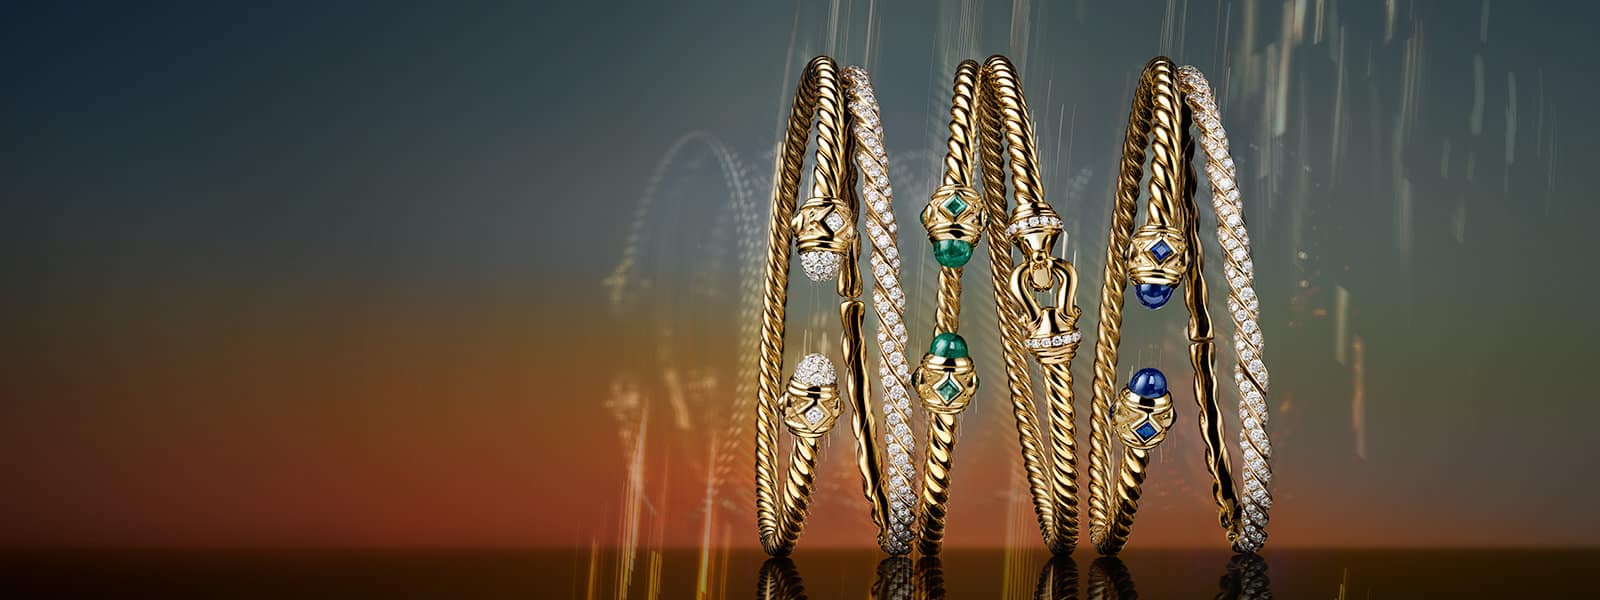 A horizontal stack shows six David Yurman Renaissance, Pavéflex and Cable Buckle bracelets for women leaning against each other against a multi-colored surface. The jewelry is made from 18K yellow gold with or without pavé white diamonds, emeralds or black onyx. The background displays colorful reflections of light and radiant reflections of the jewelry.